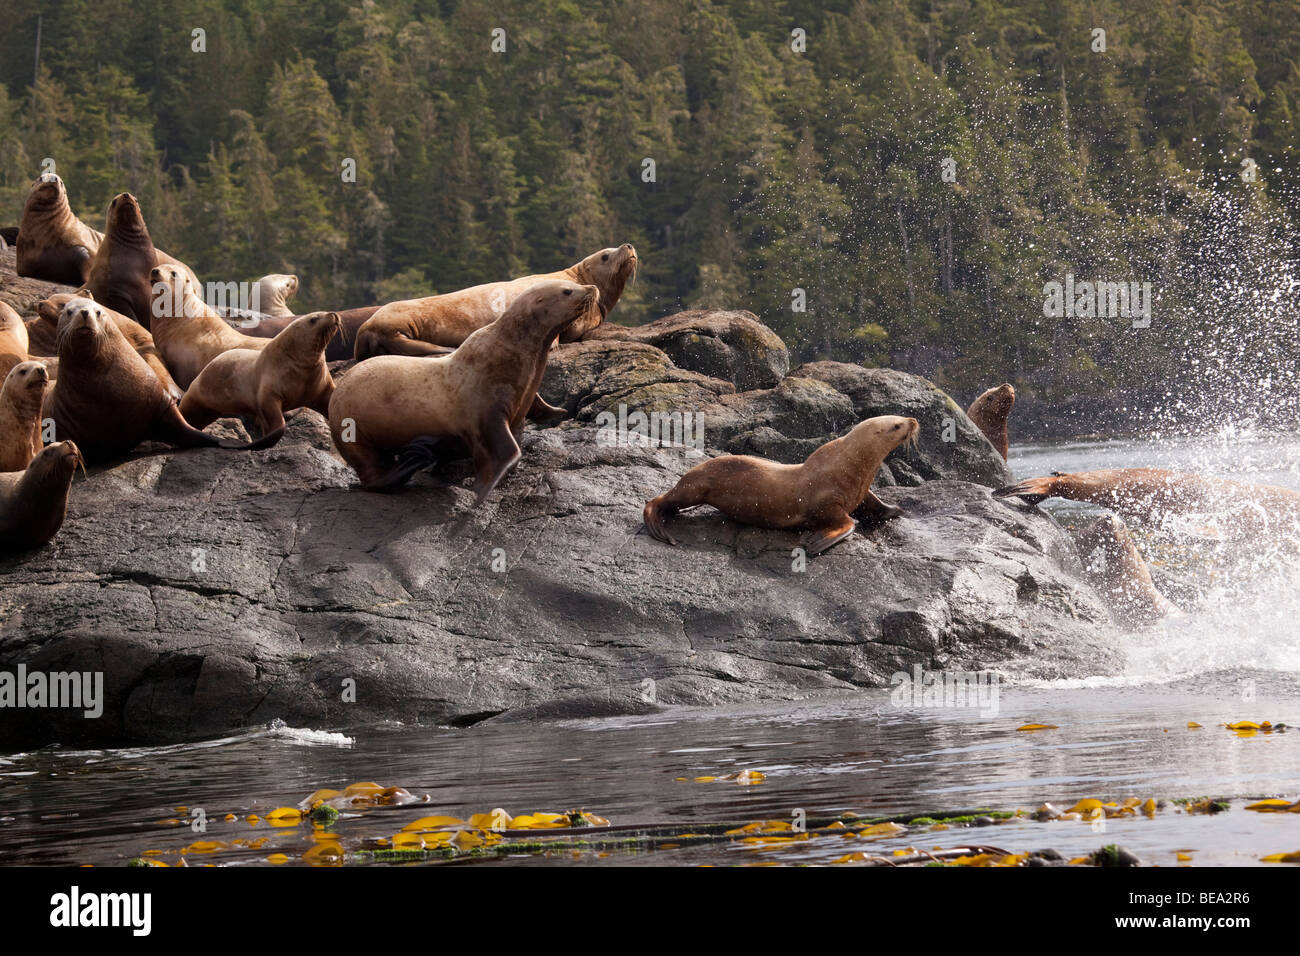 Stellar sea lions diving off a rock into the sea in northwest Canada - Stock Image